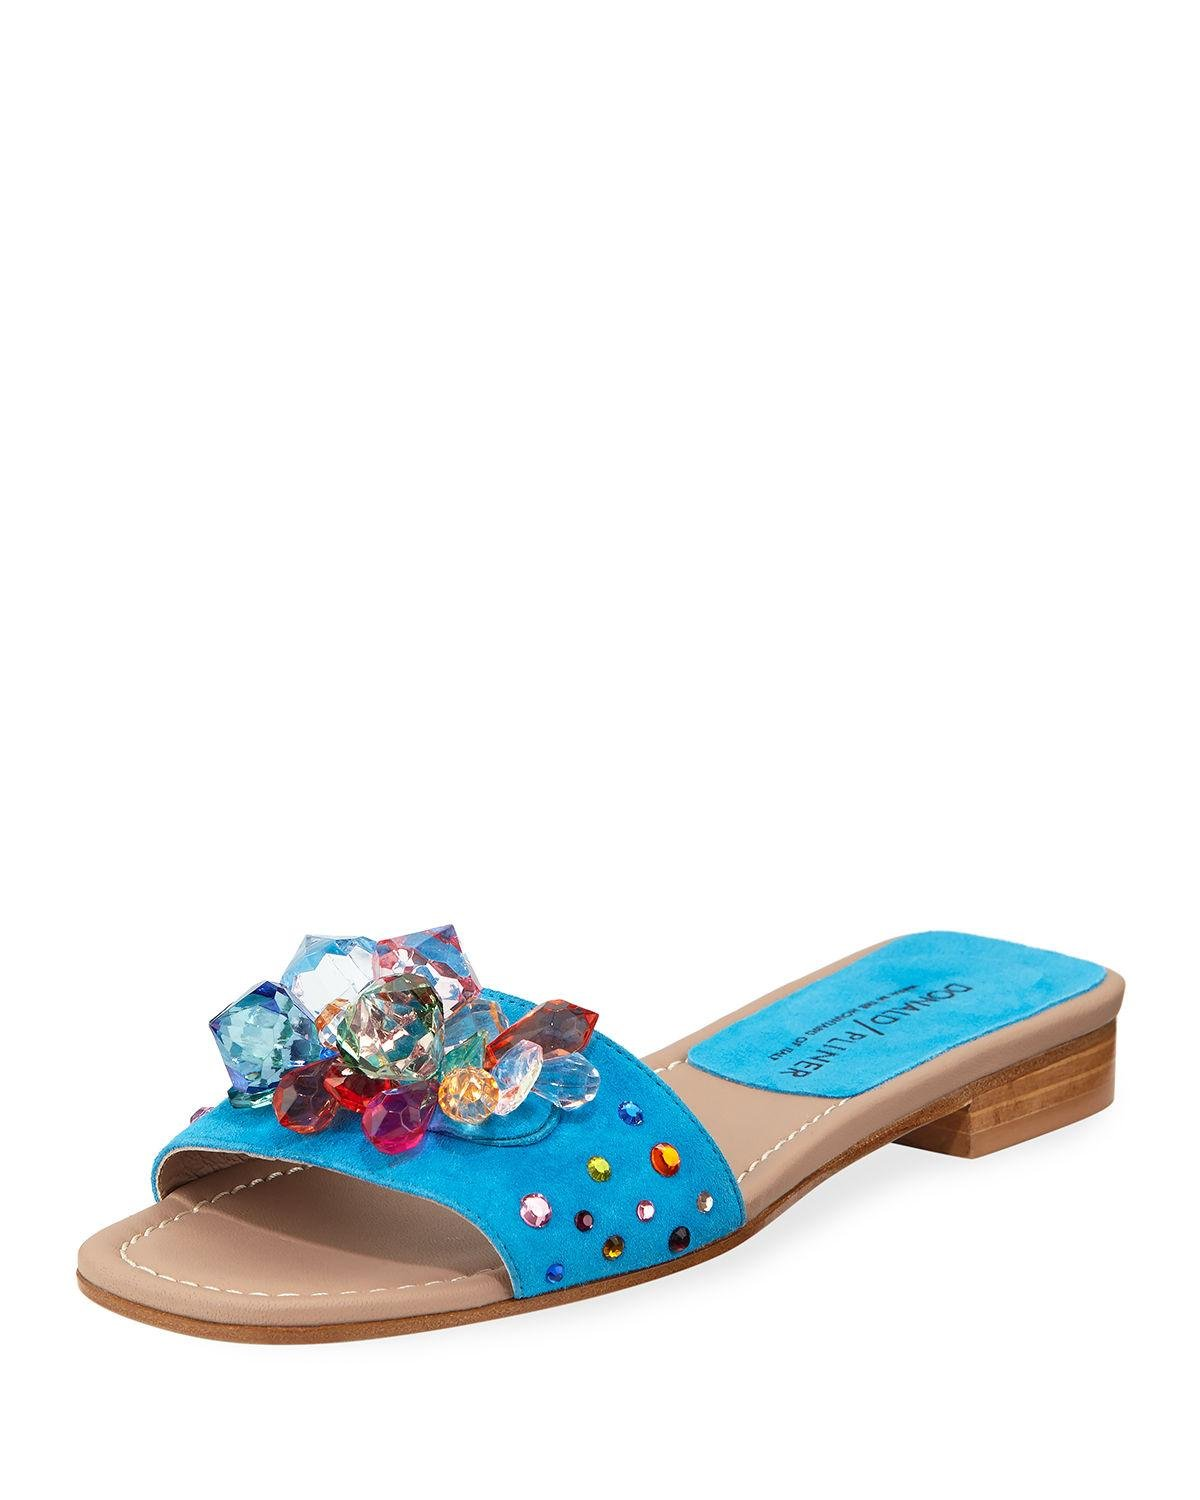 26f12e1d0 Donald J Pliner - Blue Tropa Jeweled Flat Suede Slide Sandals - Lyst. View  fullscreen